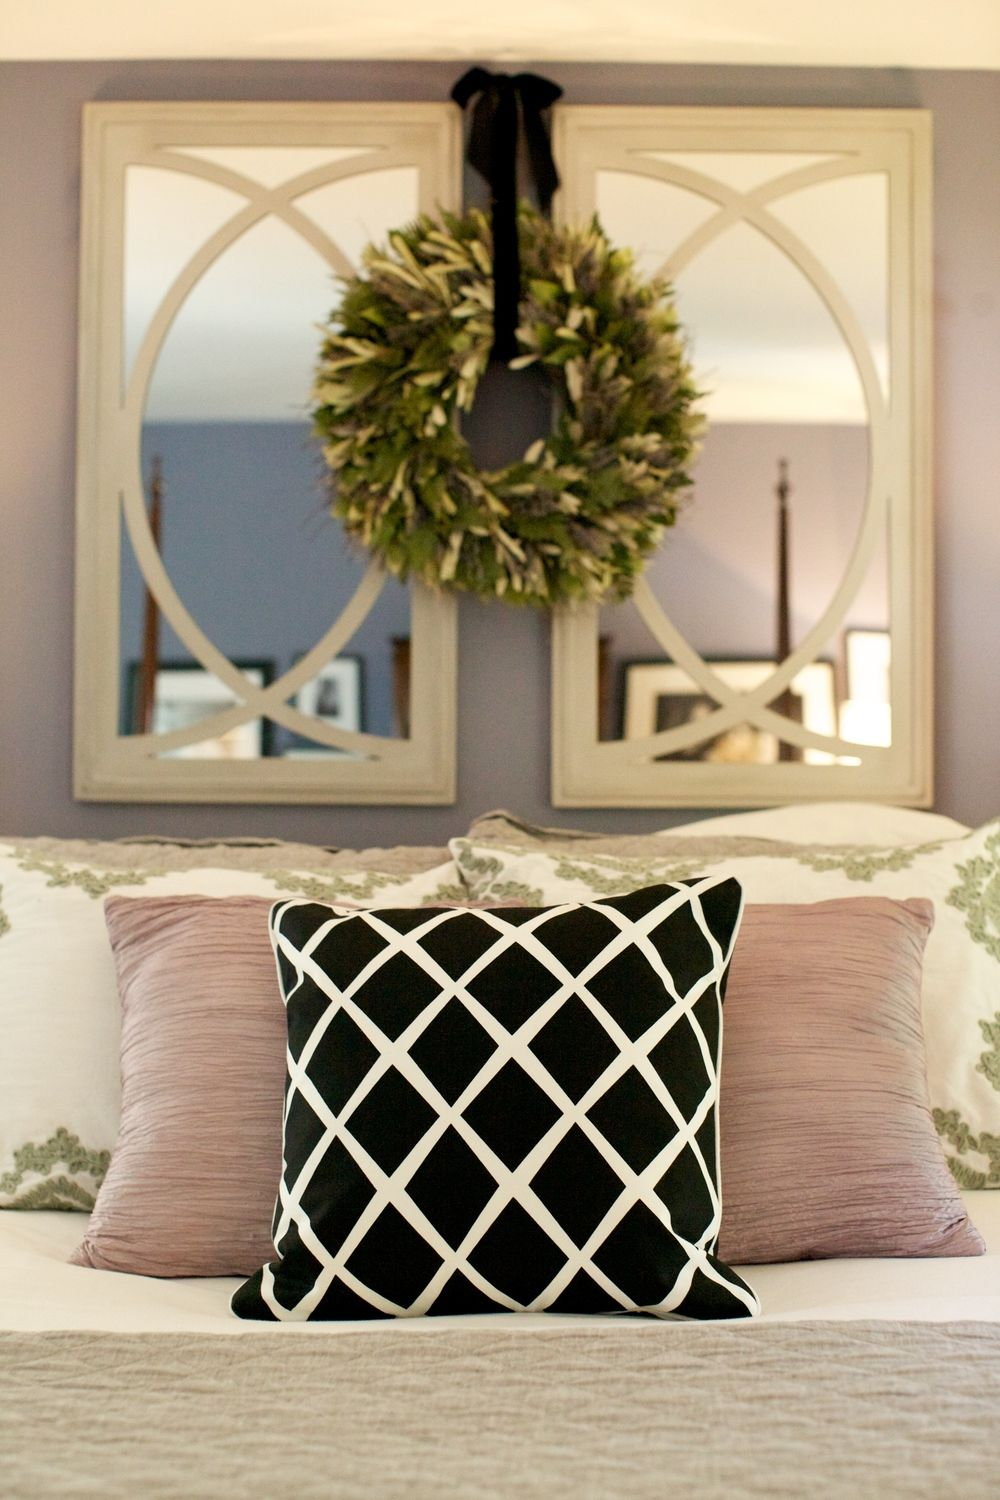 Best Love The Mirrors And Wreath Above The Bed Dream Home 400 x 300